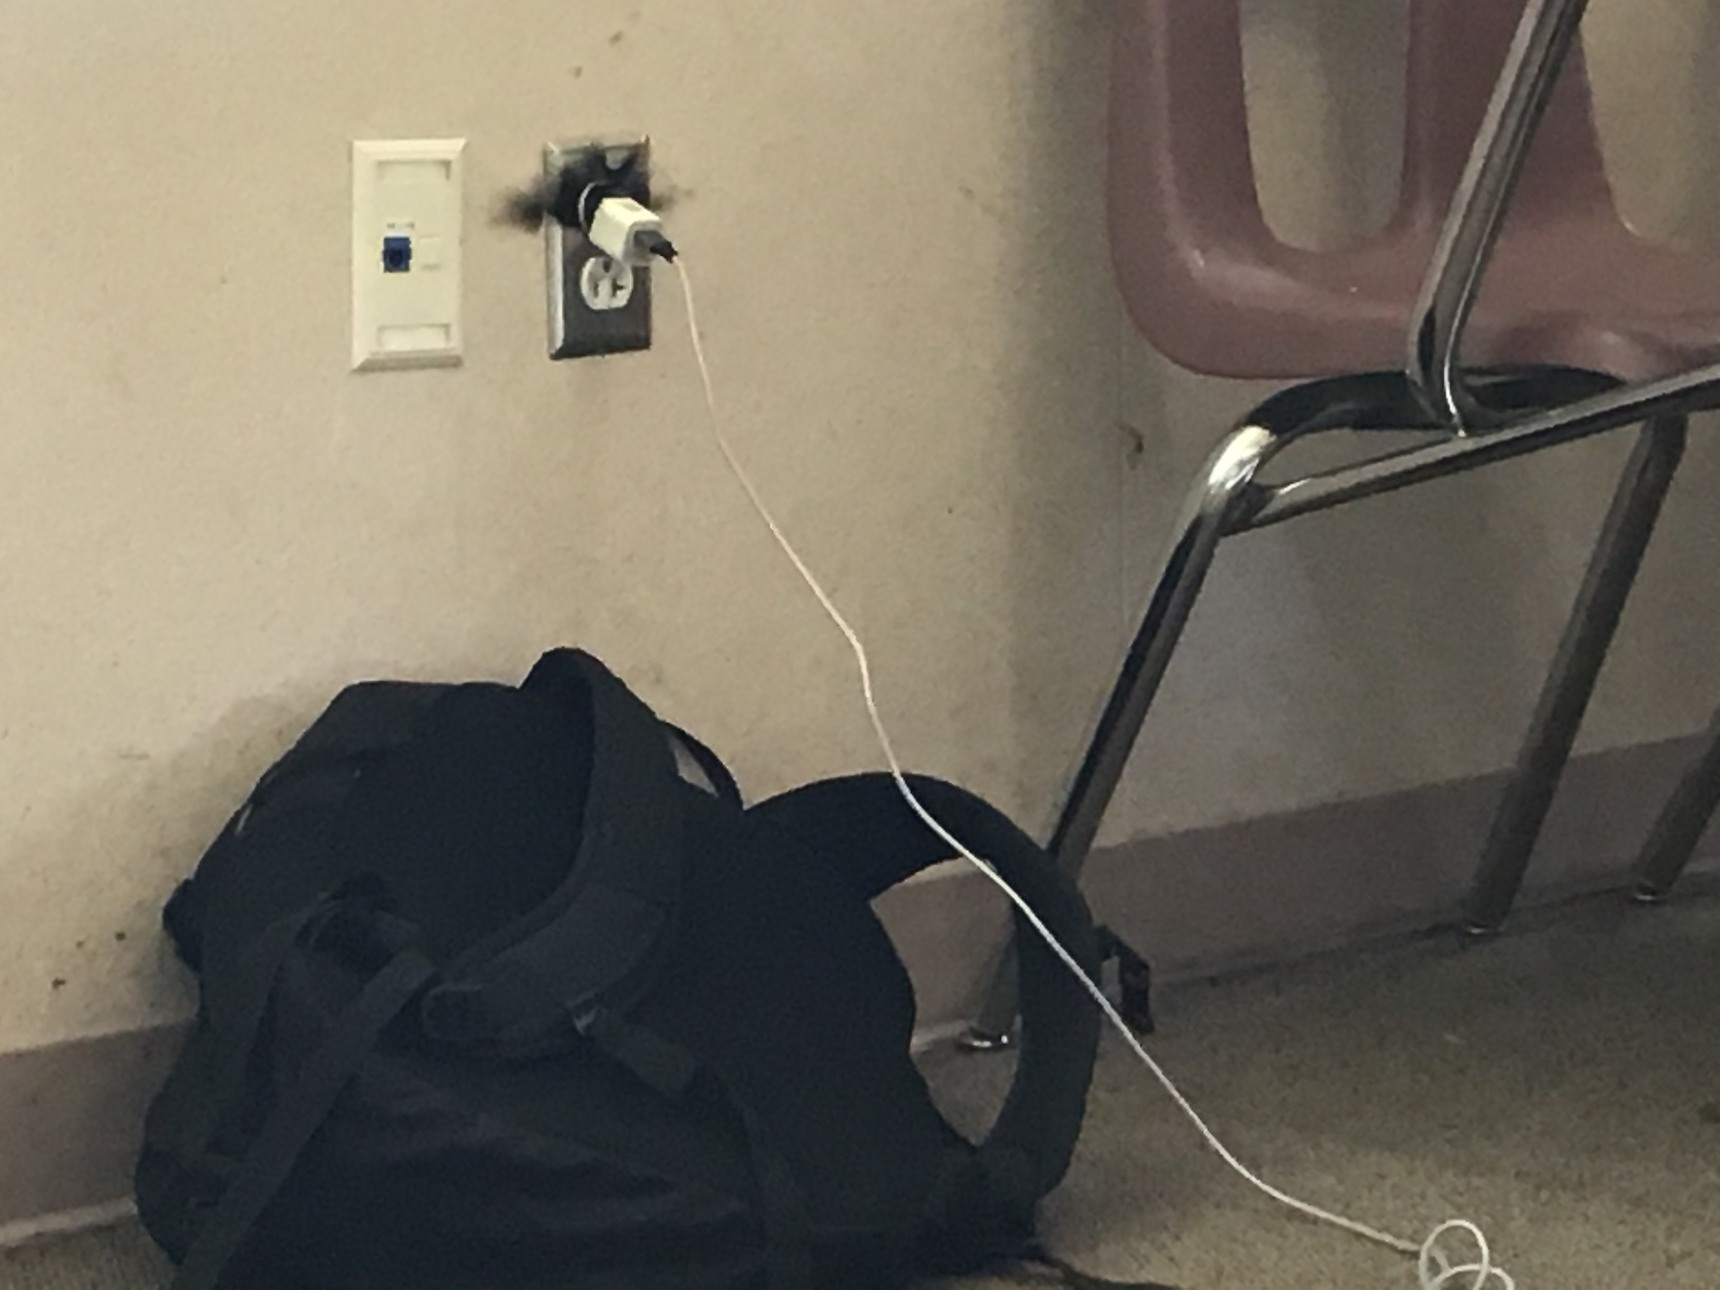 My friend put a penny with the charger and almost killed me - meme